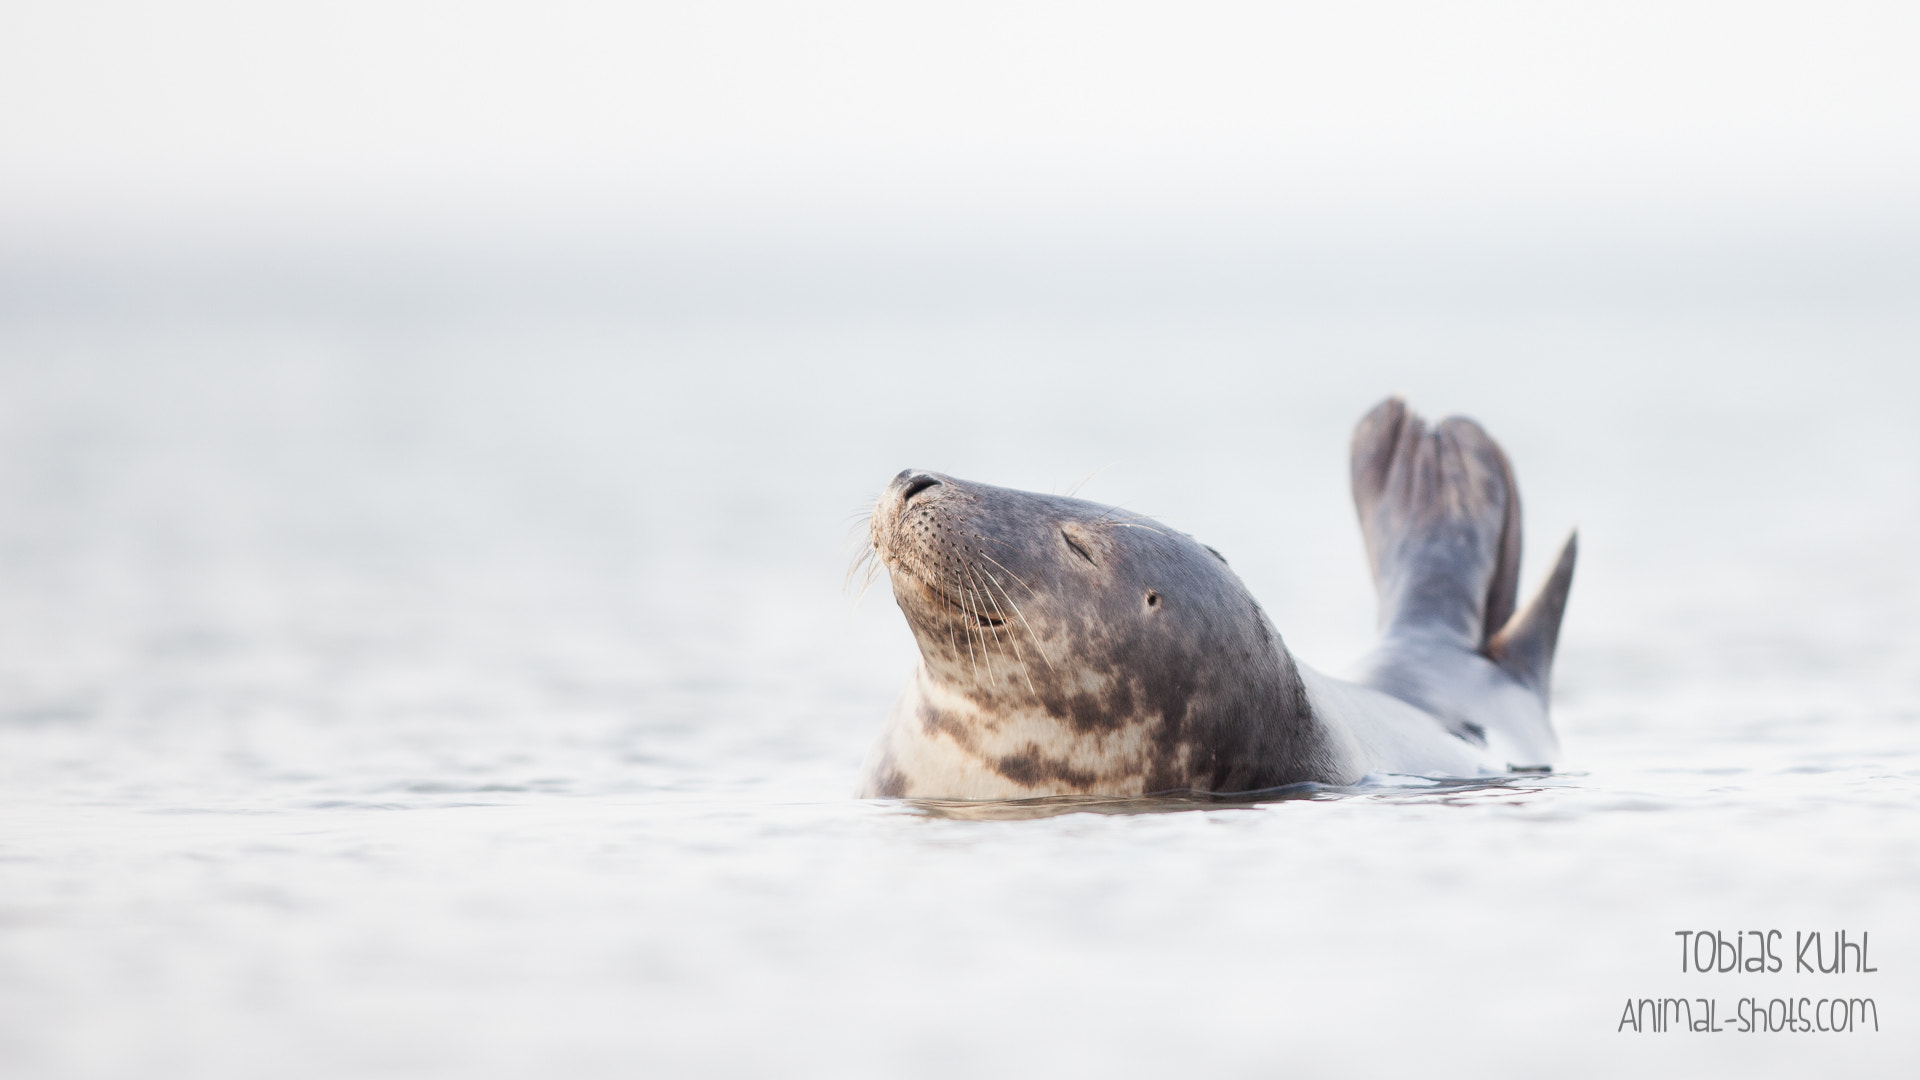 Photograph Happy Swimming by Tobias Kuhl on 500px